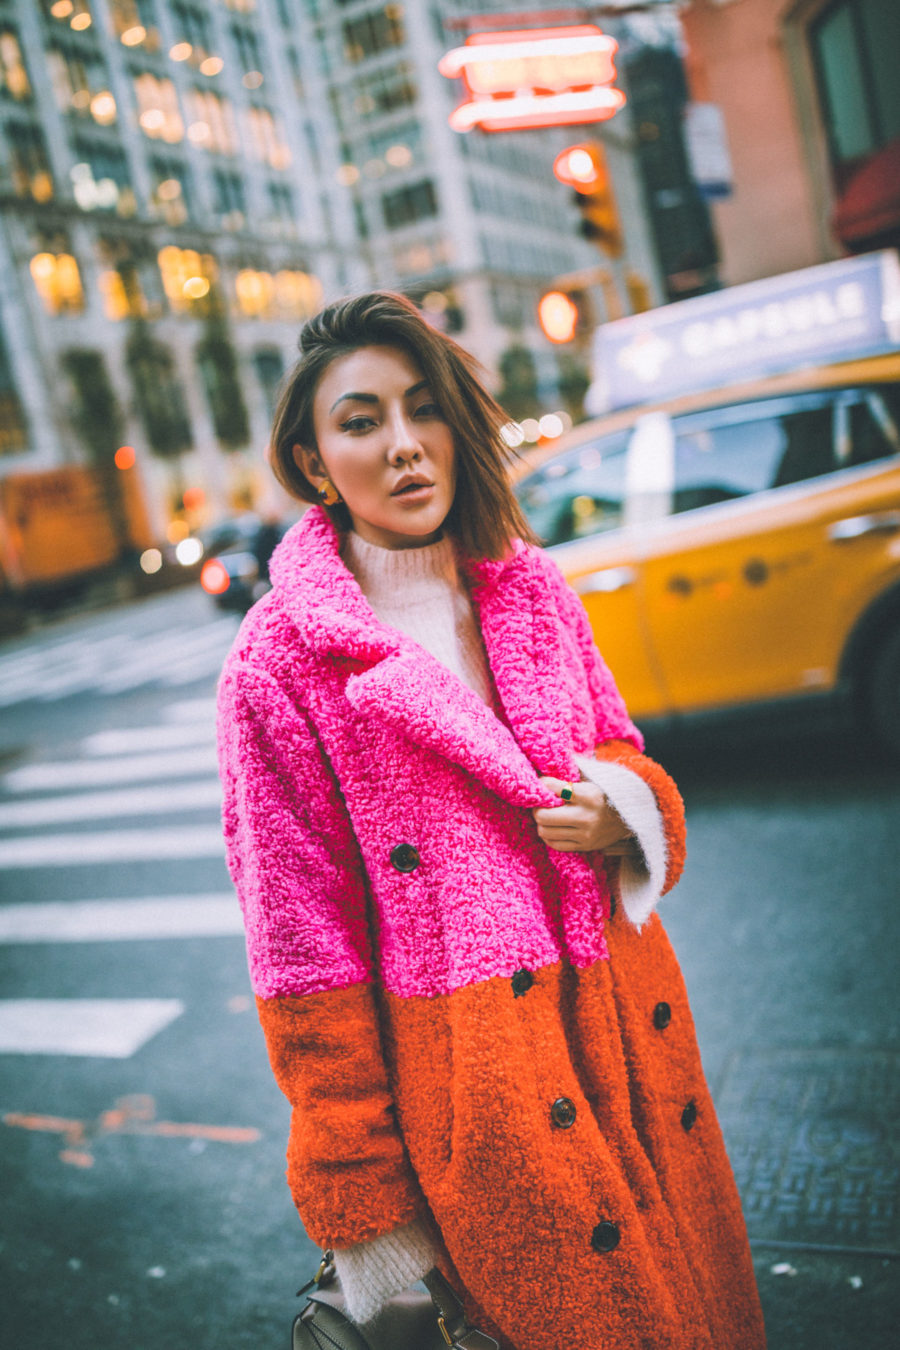 fashion blogger jessica wang shares holiday gift guide for the whole family wearing colorblock coat and white boots // Notjessfashion.com